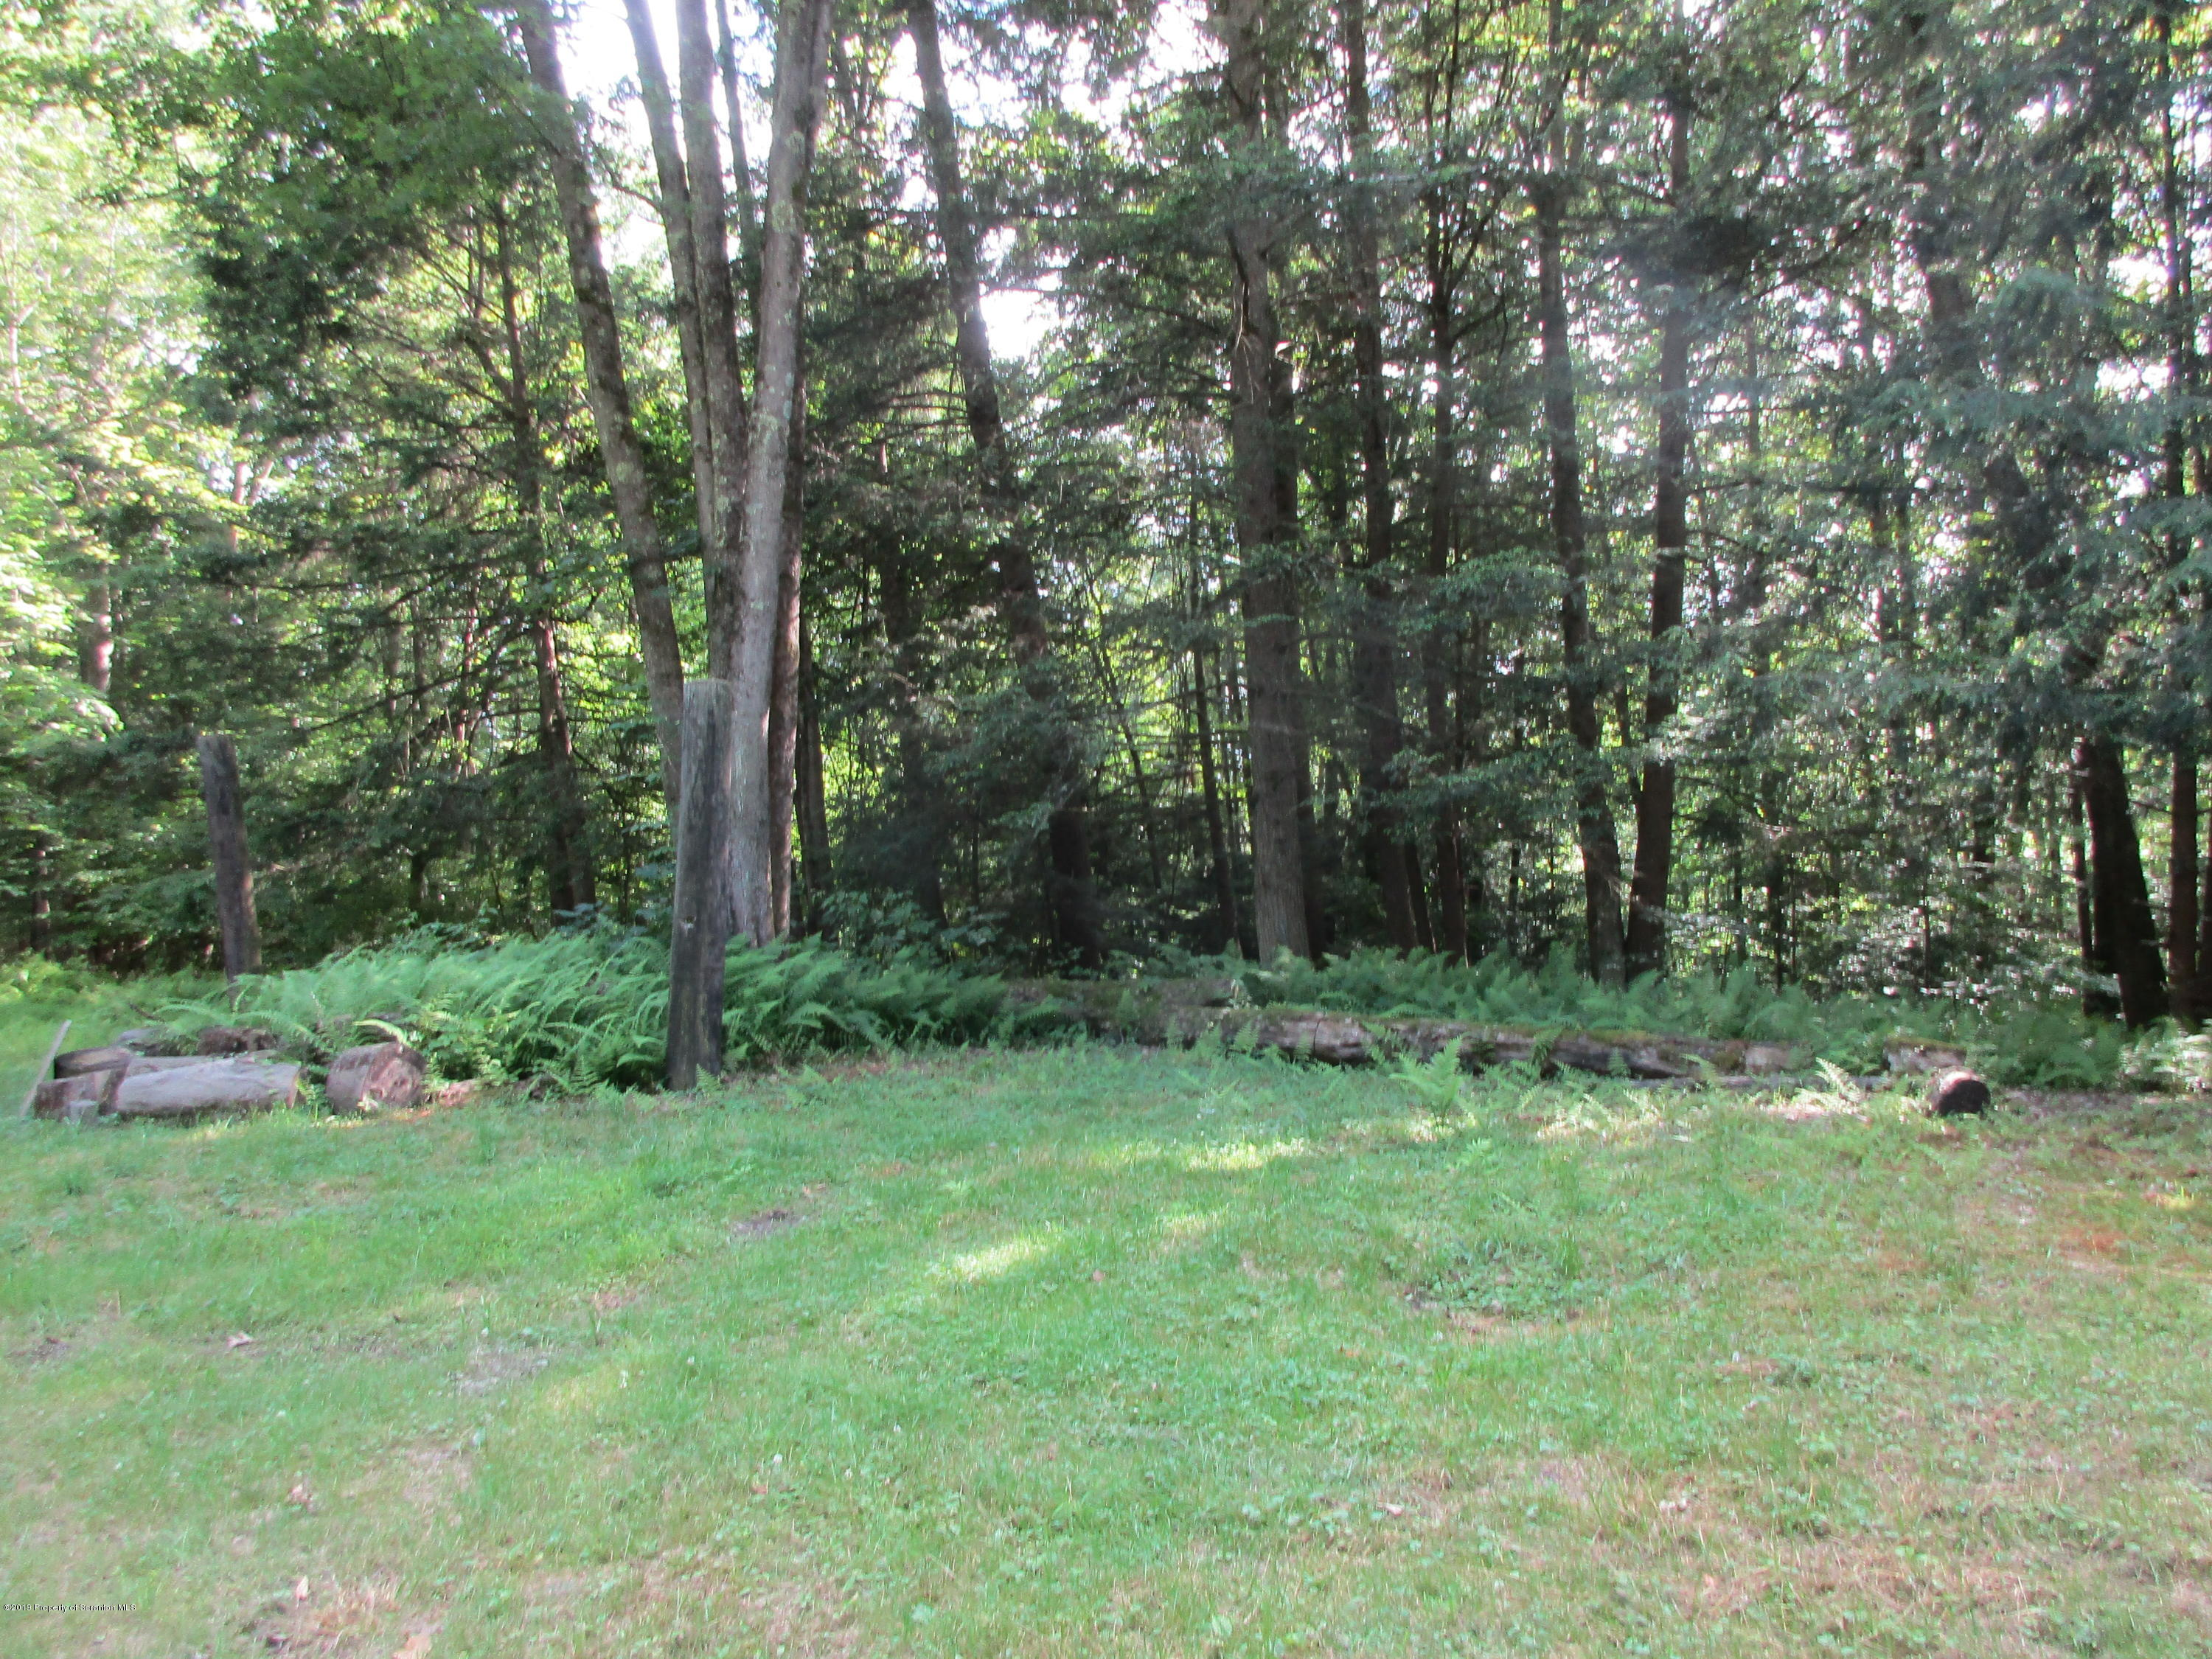 304 Fieldsbrook Rd, Nicholson, Pennsylvania 18446, ,Land,For Sale,Fieldsbrook,19-3205